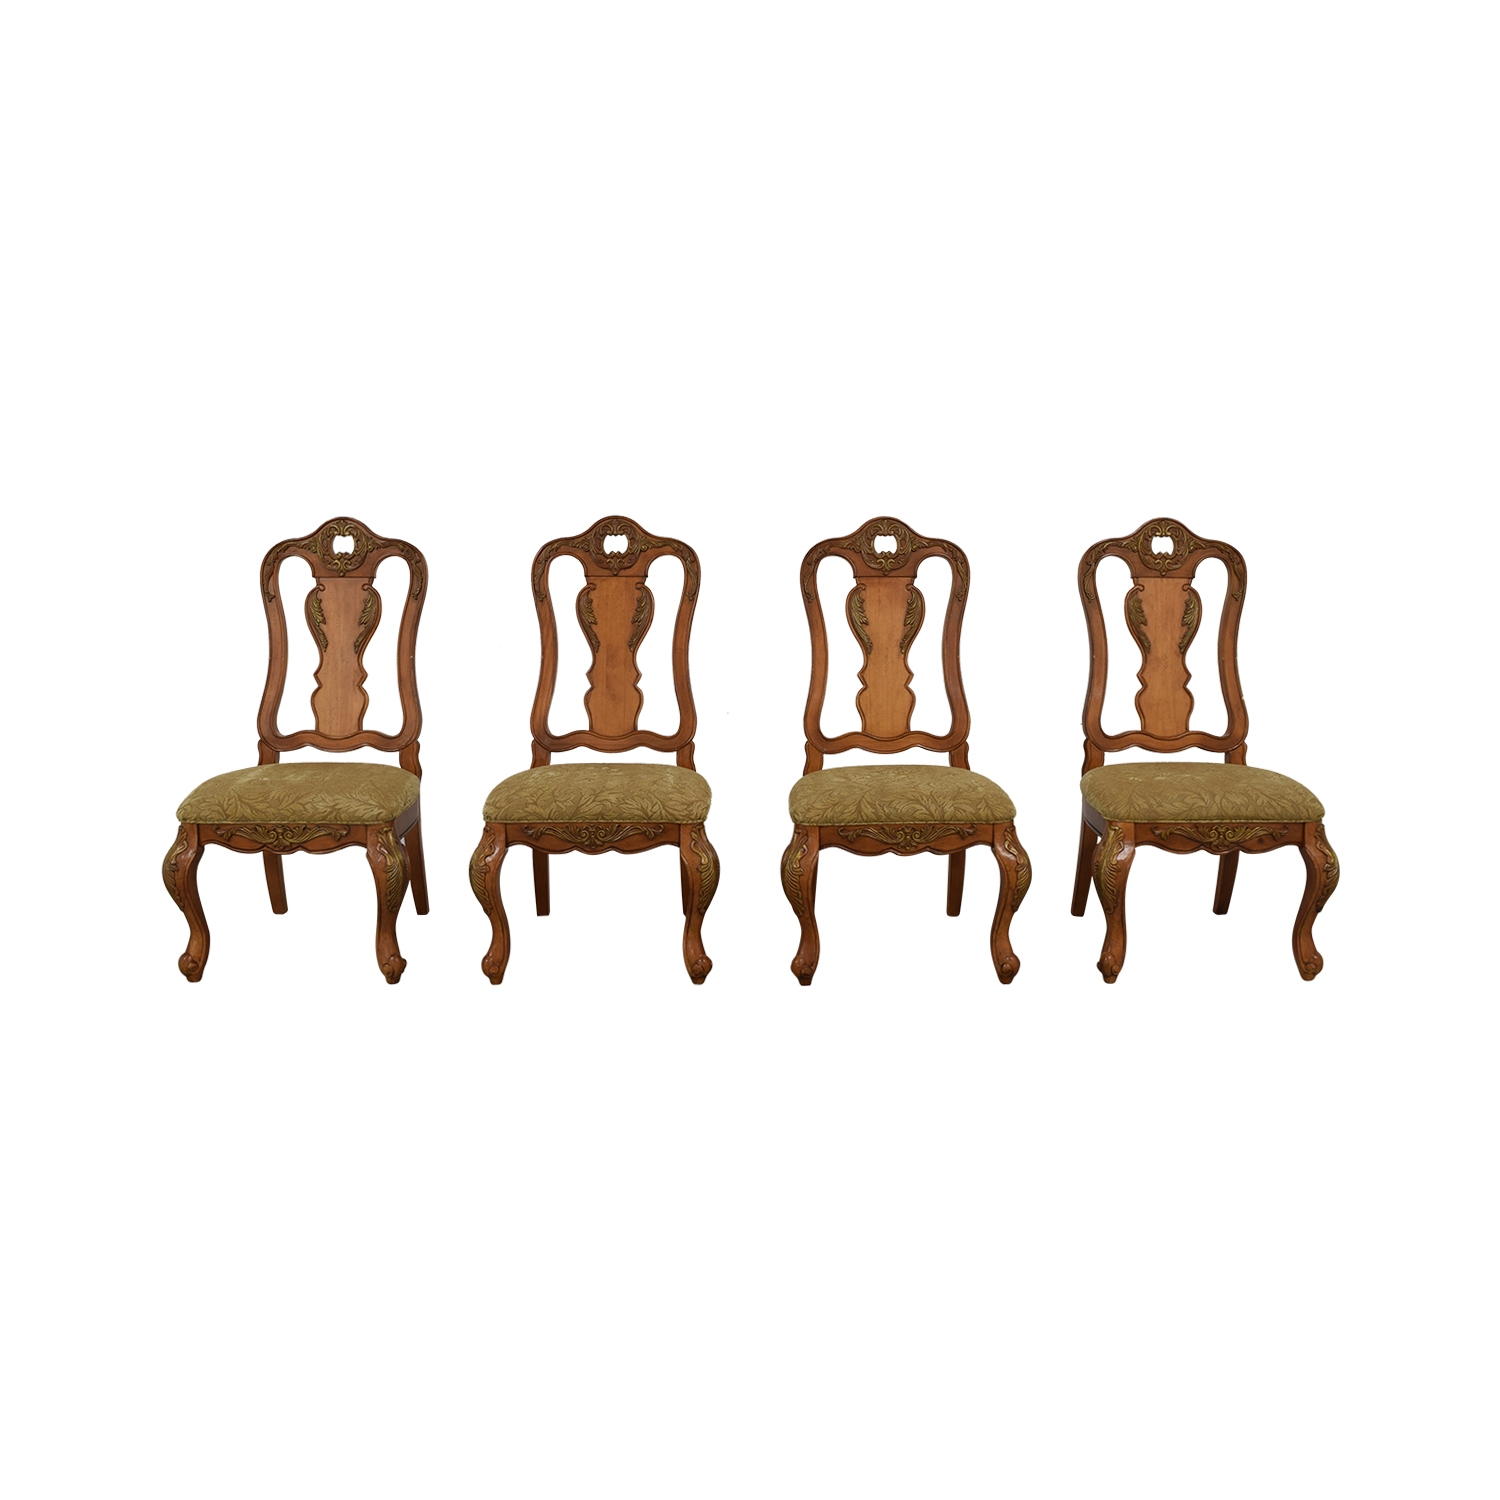 Legacy Classic Furniture Legacy Classic Dining Chairs on sale